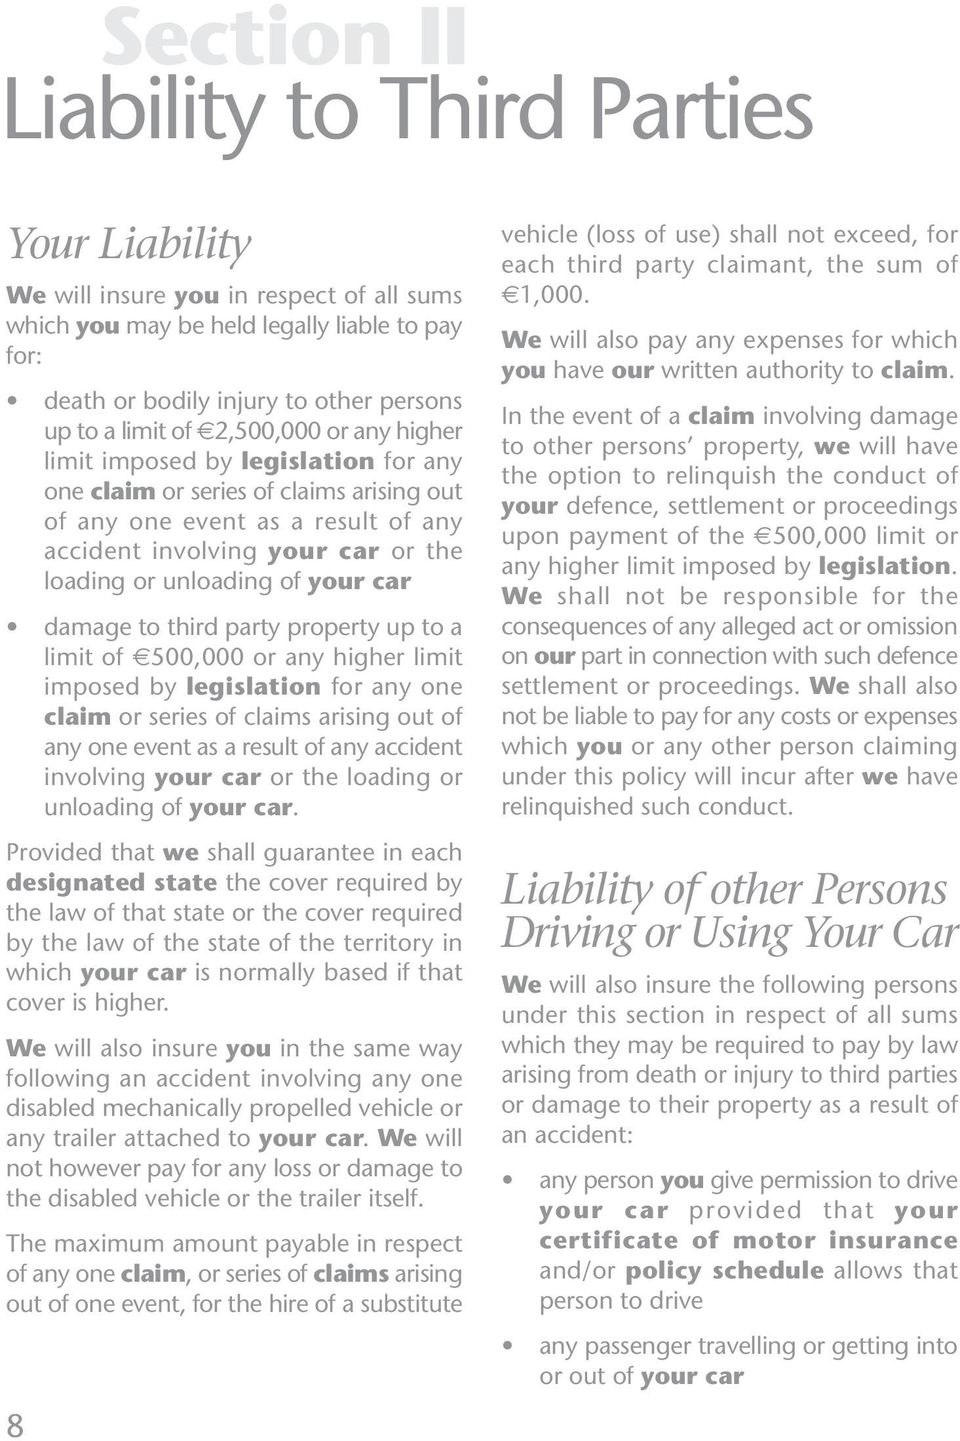 of your car damage to third party property up to a limit of L500,000 or any higher limit imposed by legislation for any one claim or series of claims arising out of any one event as a result of any